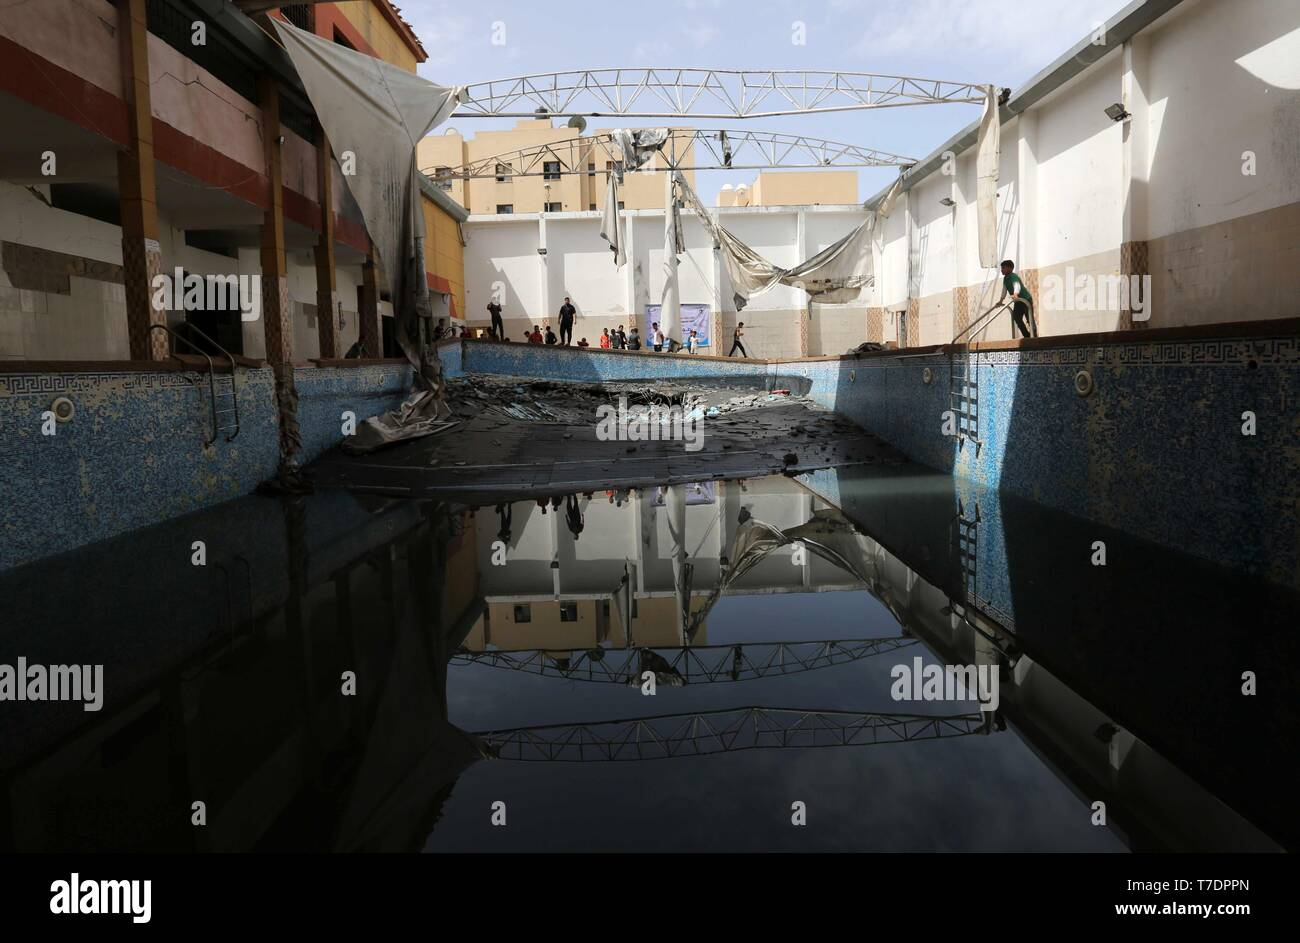 Beit Lahia, Gaza Strip, Palestinian Territory. 6th May, 2019. Palestinians inspect a swimming pool following an Israeli airstrike, in Beit Lahia in the northern Gaza Strip on May 6, 2019. The Israeli attack on the Gaza Strip left 25 Palestinians dead and at least 154 injured, after Israel and Hamas reached a ceasefire agreement on early morning hours, mediated by Egypt Credit: Ashraf Amra/APA Images/ZUMA Wire/Alamy Live News - Stock Image